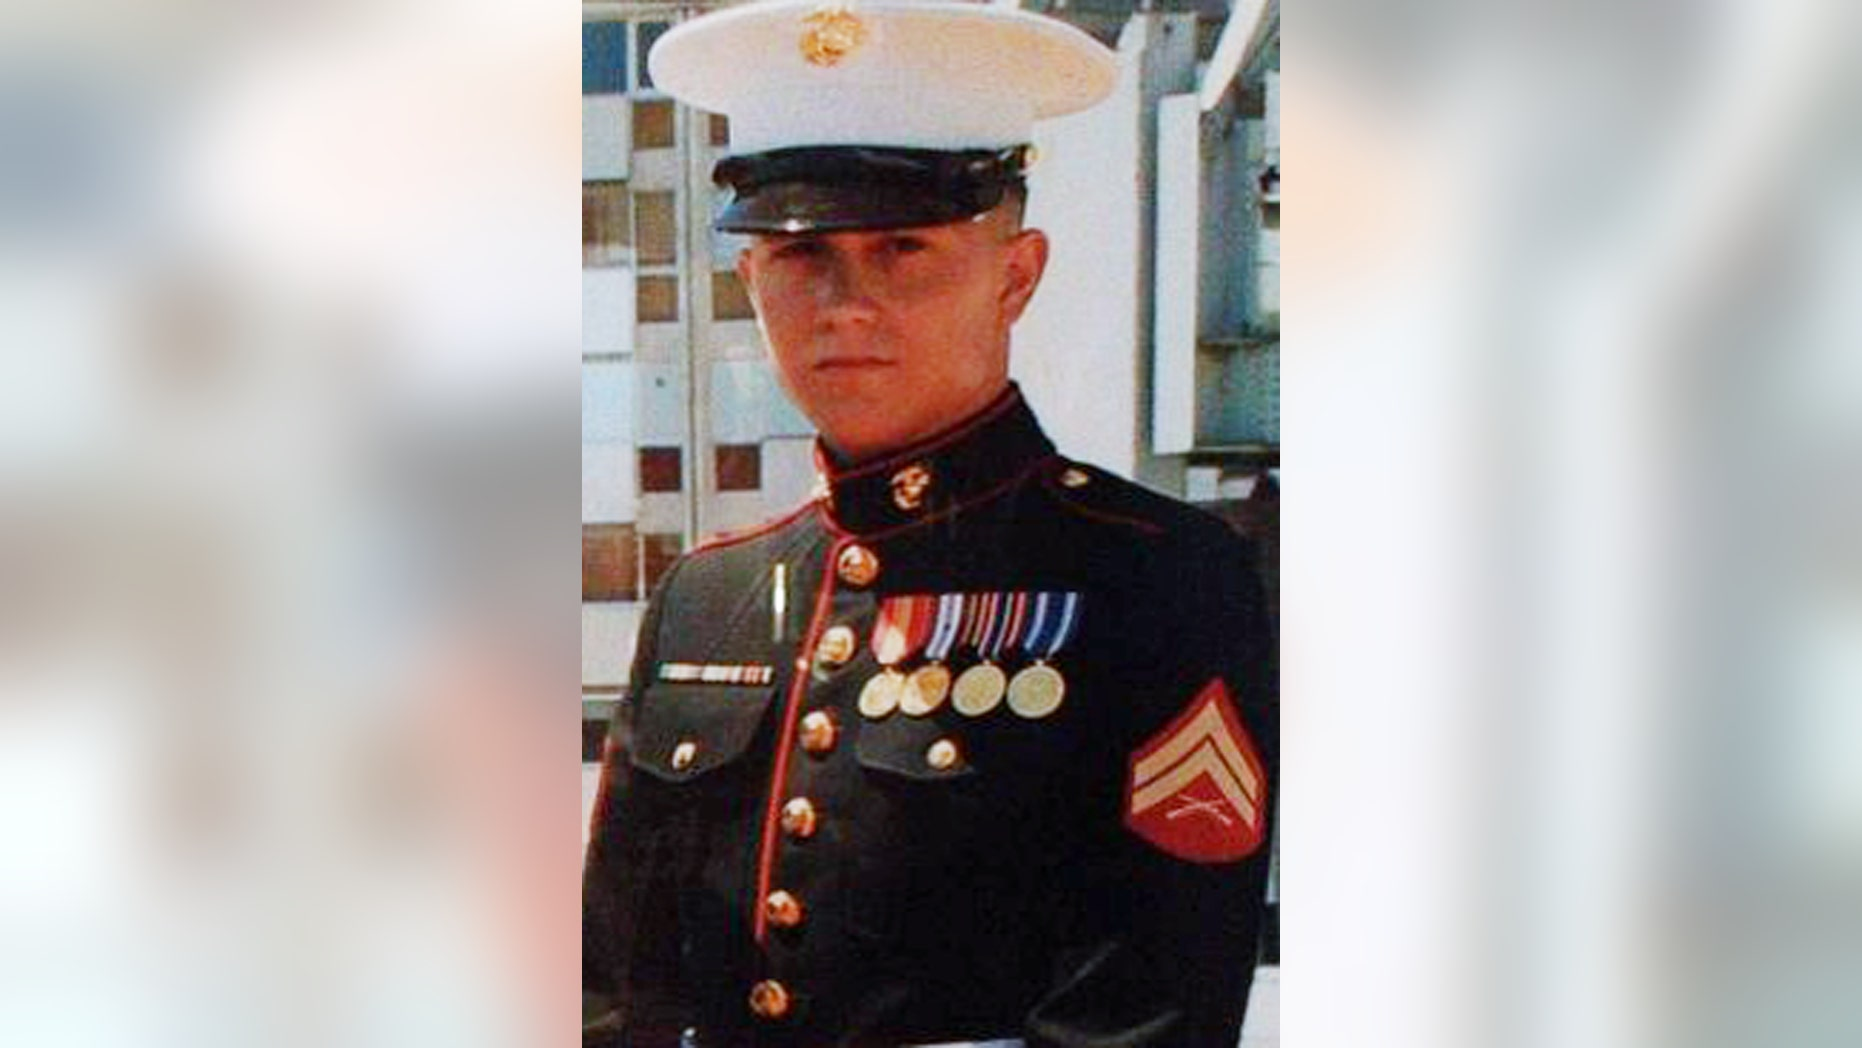 This undated photo provided by the family via attorney Aaron J. Freiwald shows U.S. Marine Brian LaLoup who died in 2012 while stationed in Greece. LaLoup's parents, Coatesville  Pa. residents said when his body arrived home in Pennsylvania his heart was missing, and they've sued the Department of Defense. On Tuesday, Dec. 10, 2013, his mother, Beverly LaLoup, said a heart was later sent to them, but it wasn't her son's. (AP Photo/LaLoup Family)